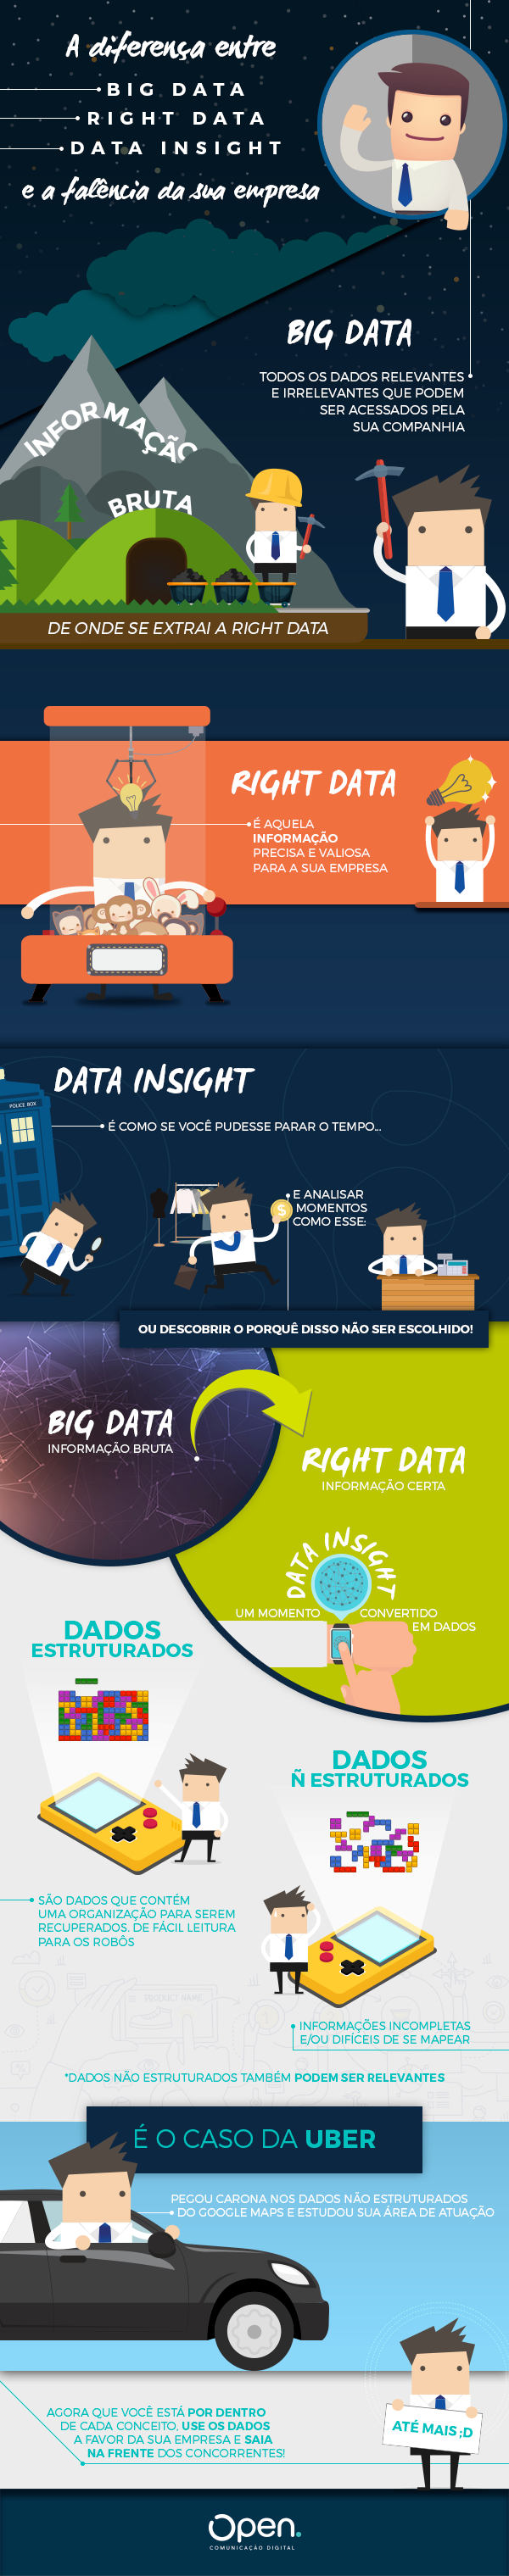 Big data, Right data, Data Insight